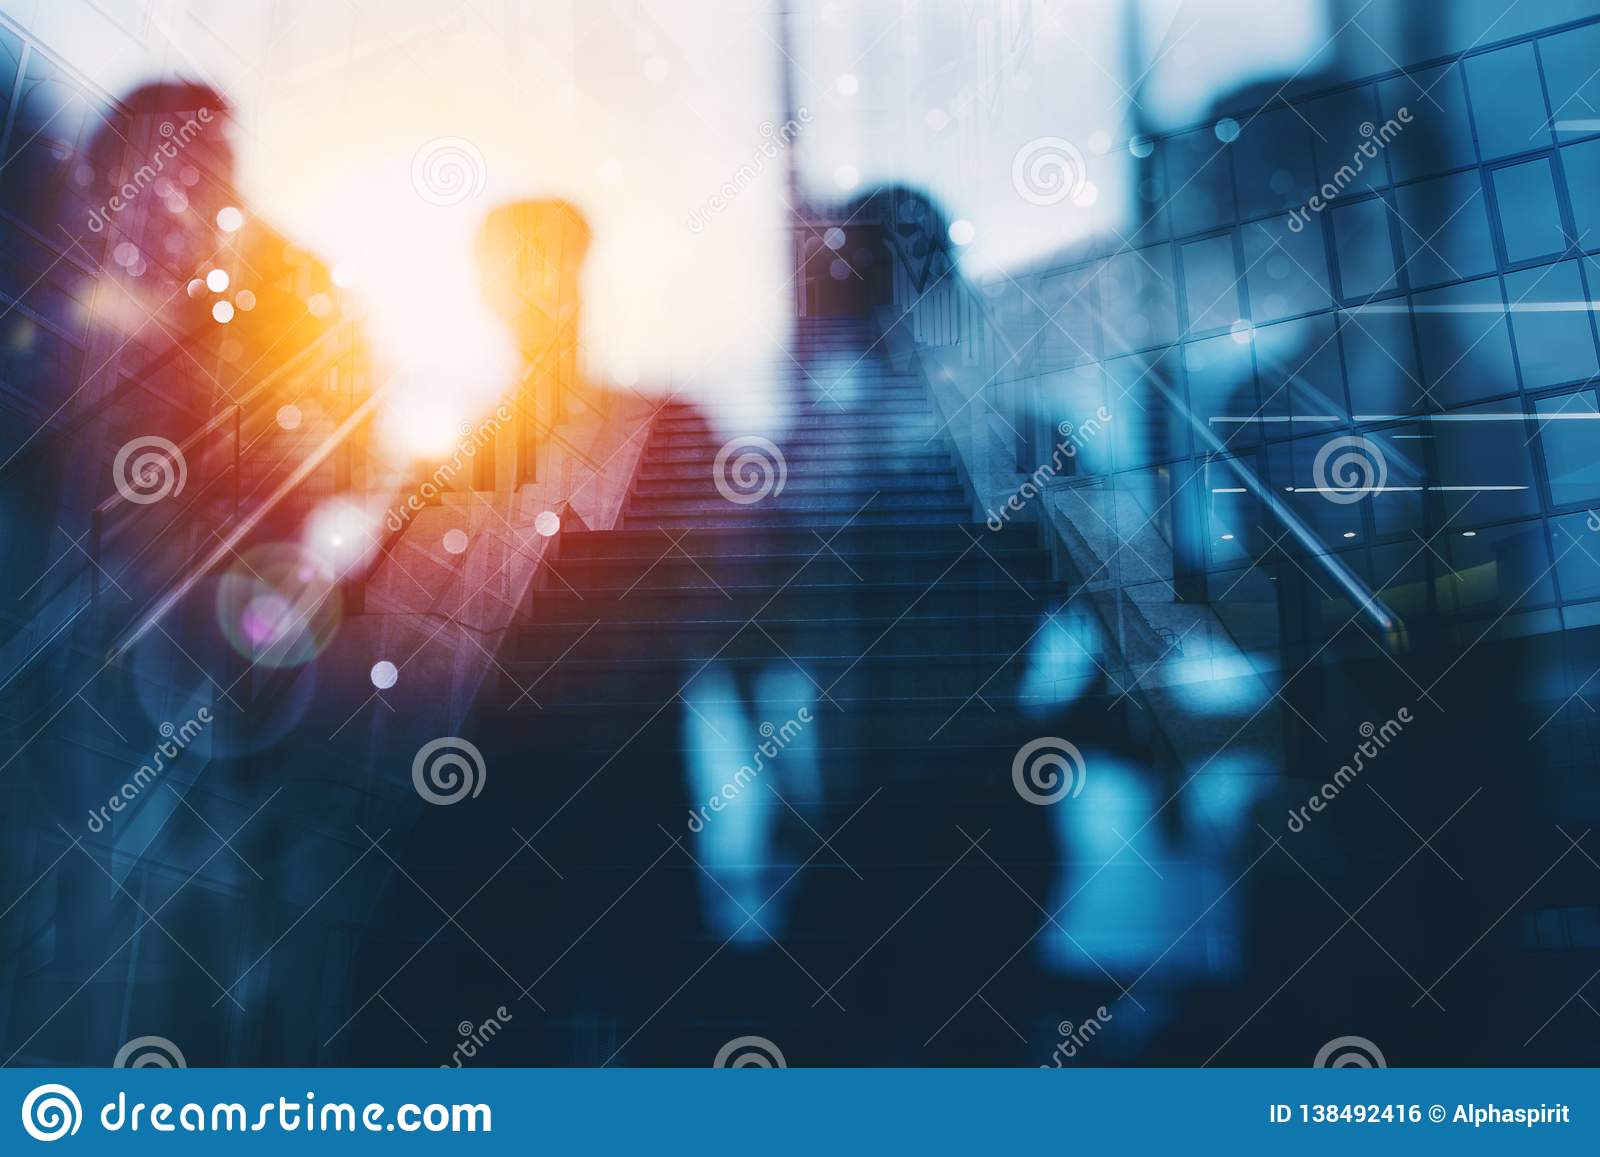 Silhouette of business people work together in office. Concept of teamwork and partnership. double exposure with light